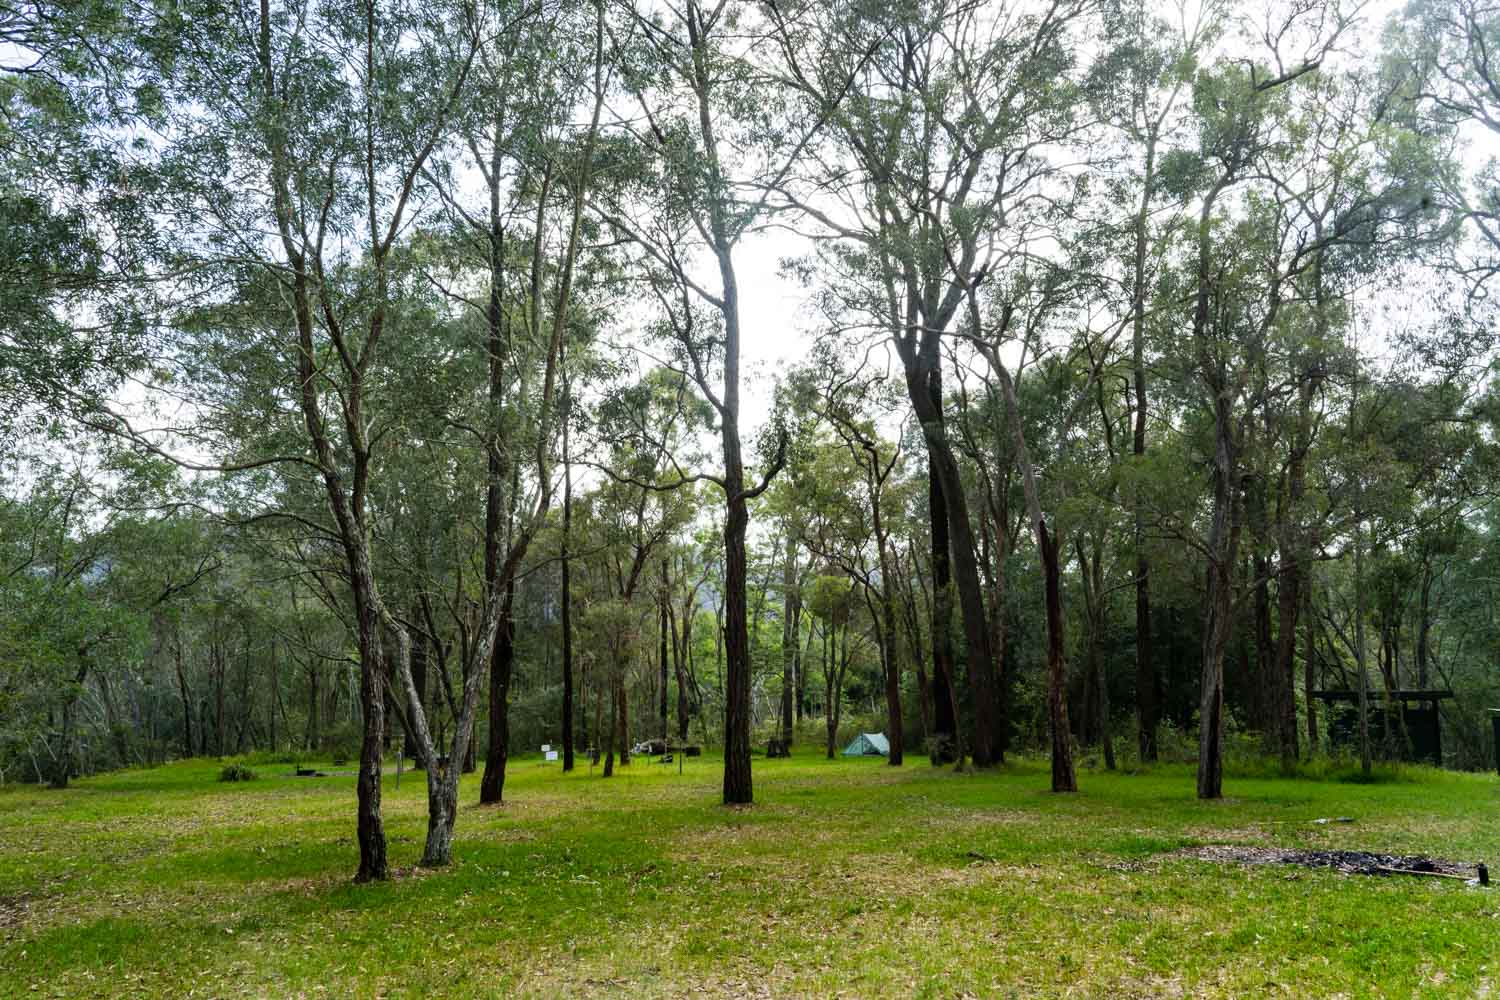 Gentlemans Halt campground is a large, grassy area. There's plenty of room to spread out.